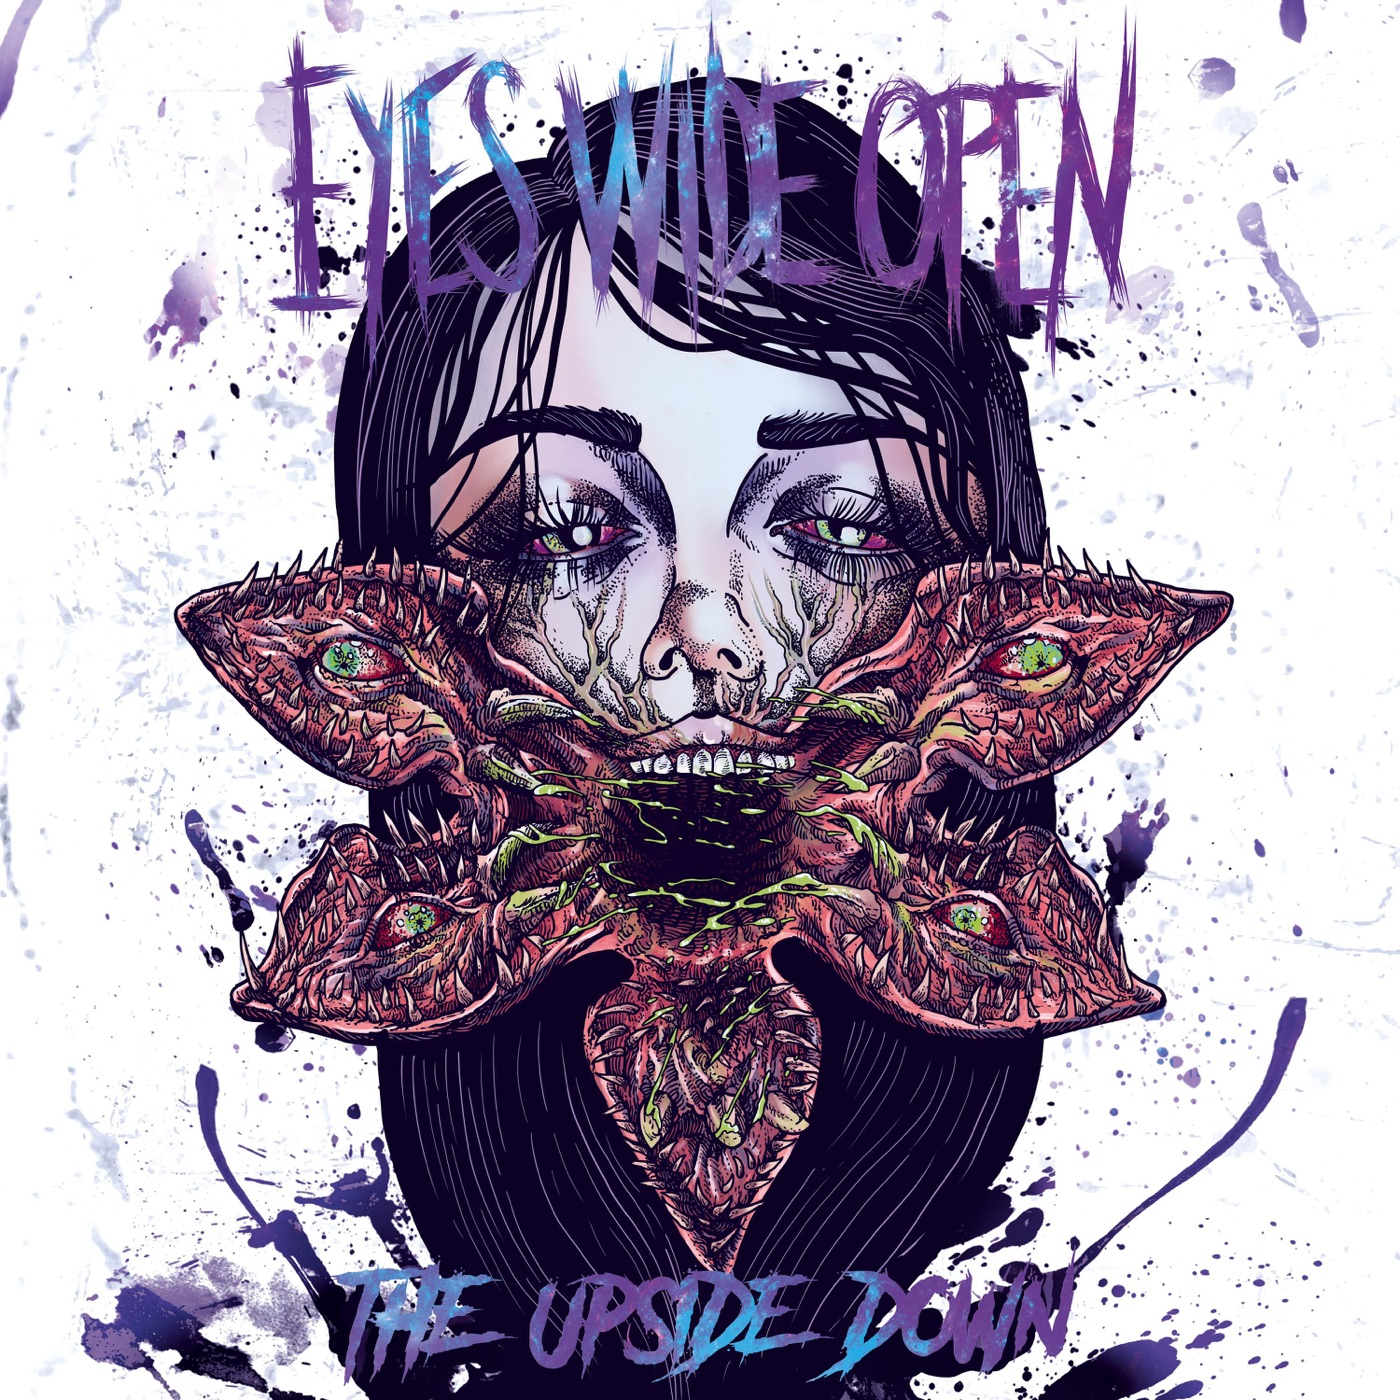 Eyes Wide Open - The Upside Down (2019)